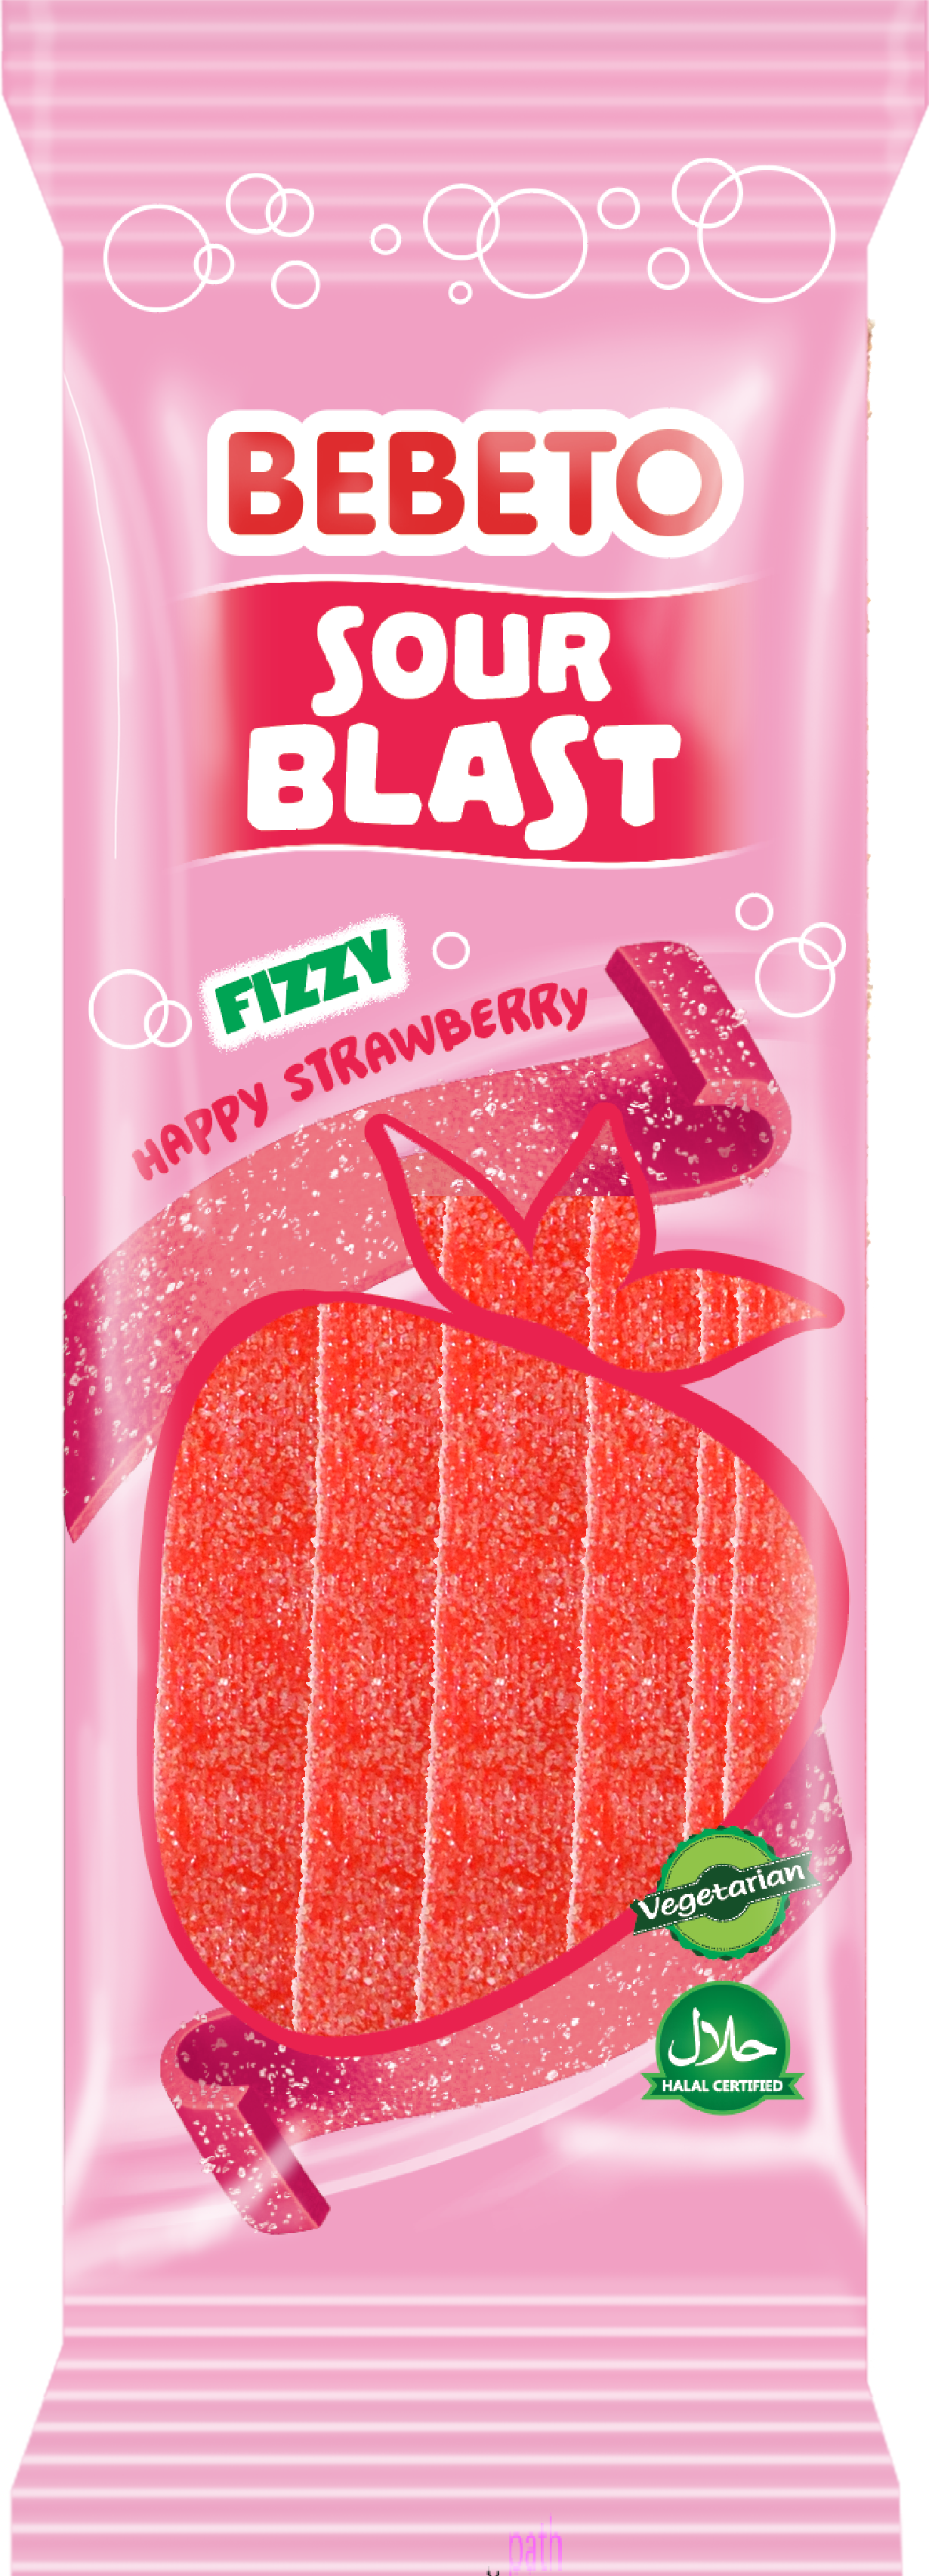 Sour Blast Fizzy Strawberry